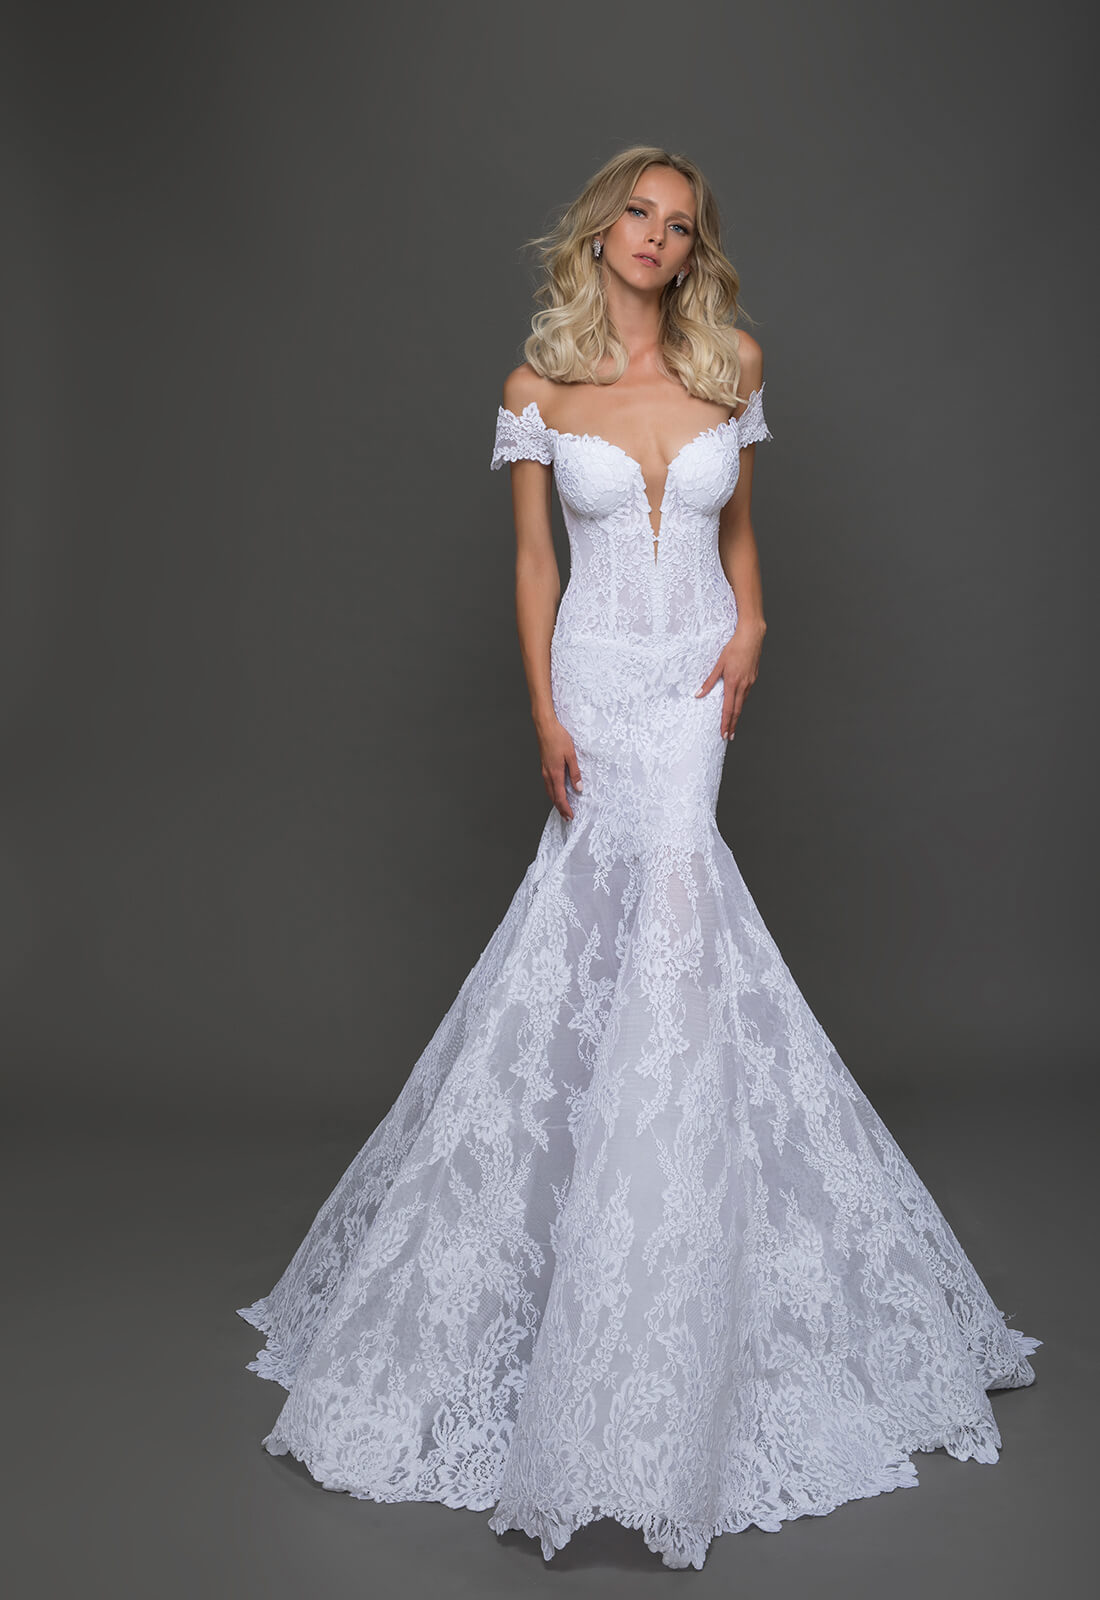 Sexy fit and flare wedding dress kleinfeld bridal sexy fit and flare wedding dress by pnina tornai image 1 zoomed in junglespirit Choice Image